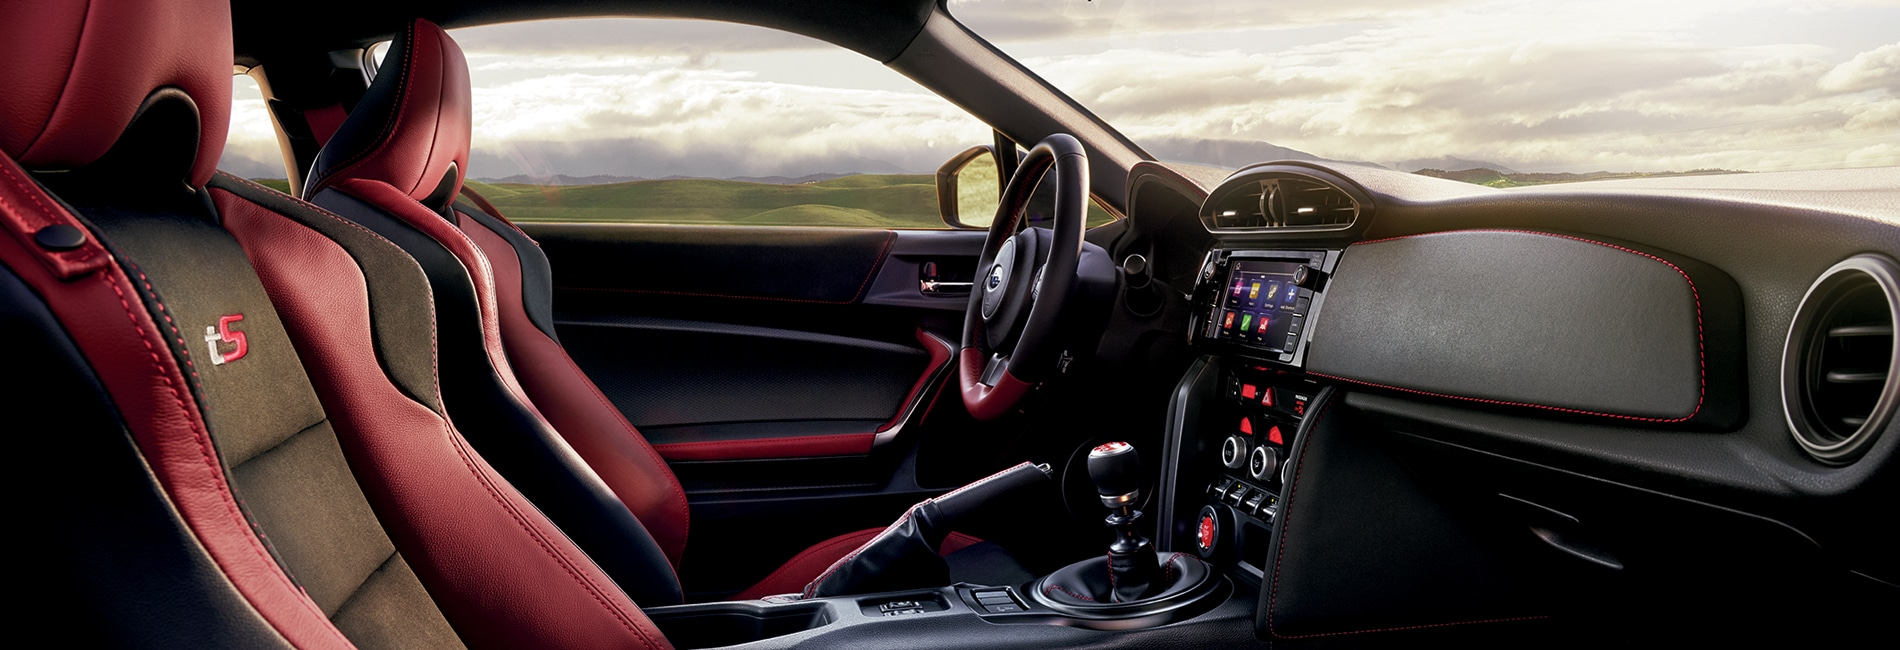 2019 Subaru BRZ Interior Features